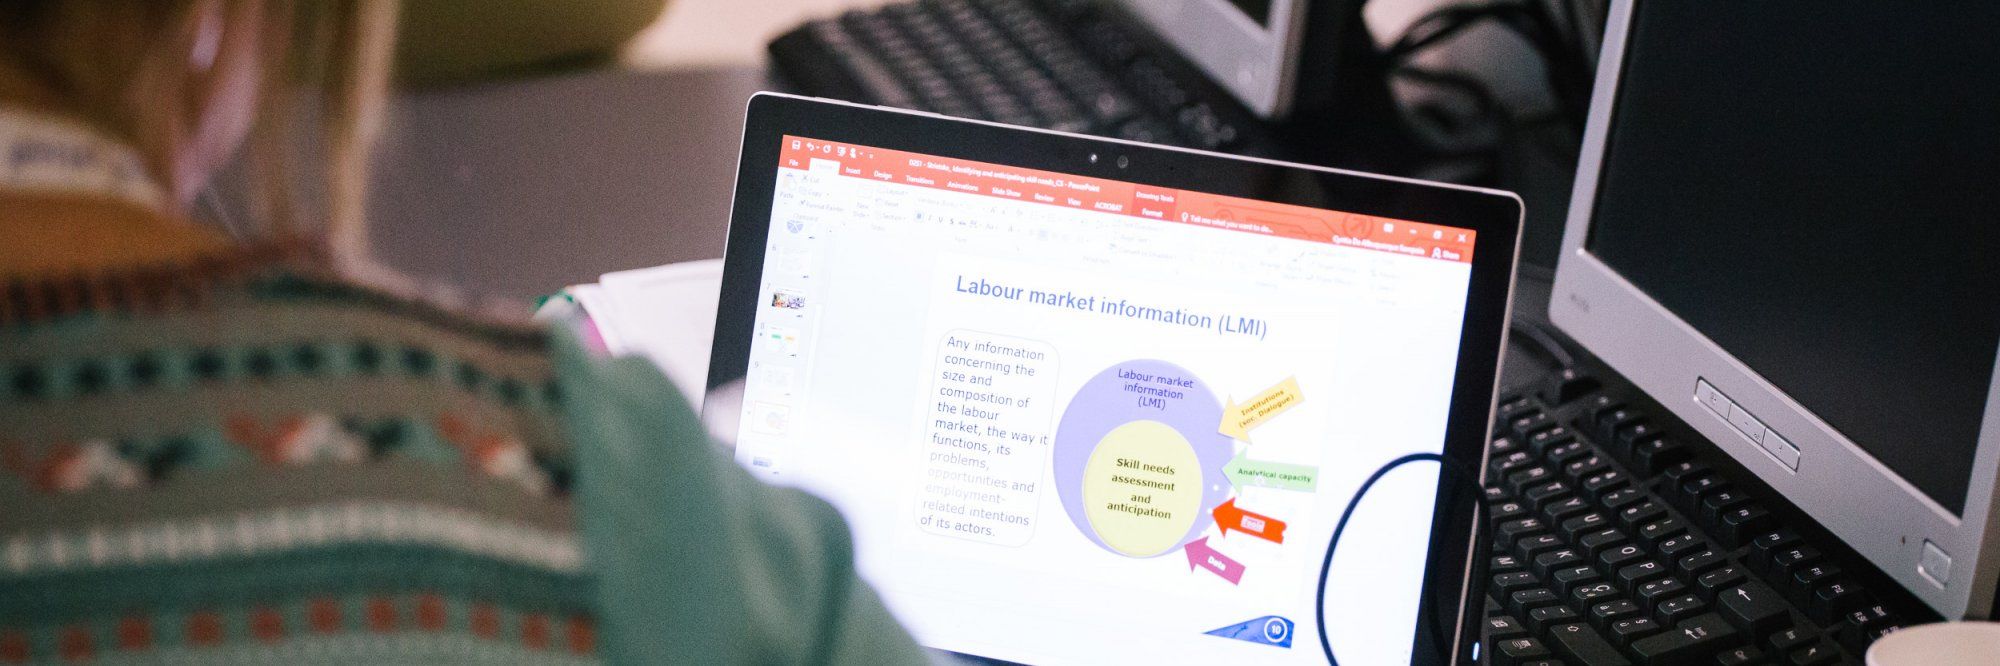 Institutional capacity building for effective labour market information systems (LMIS)